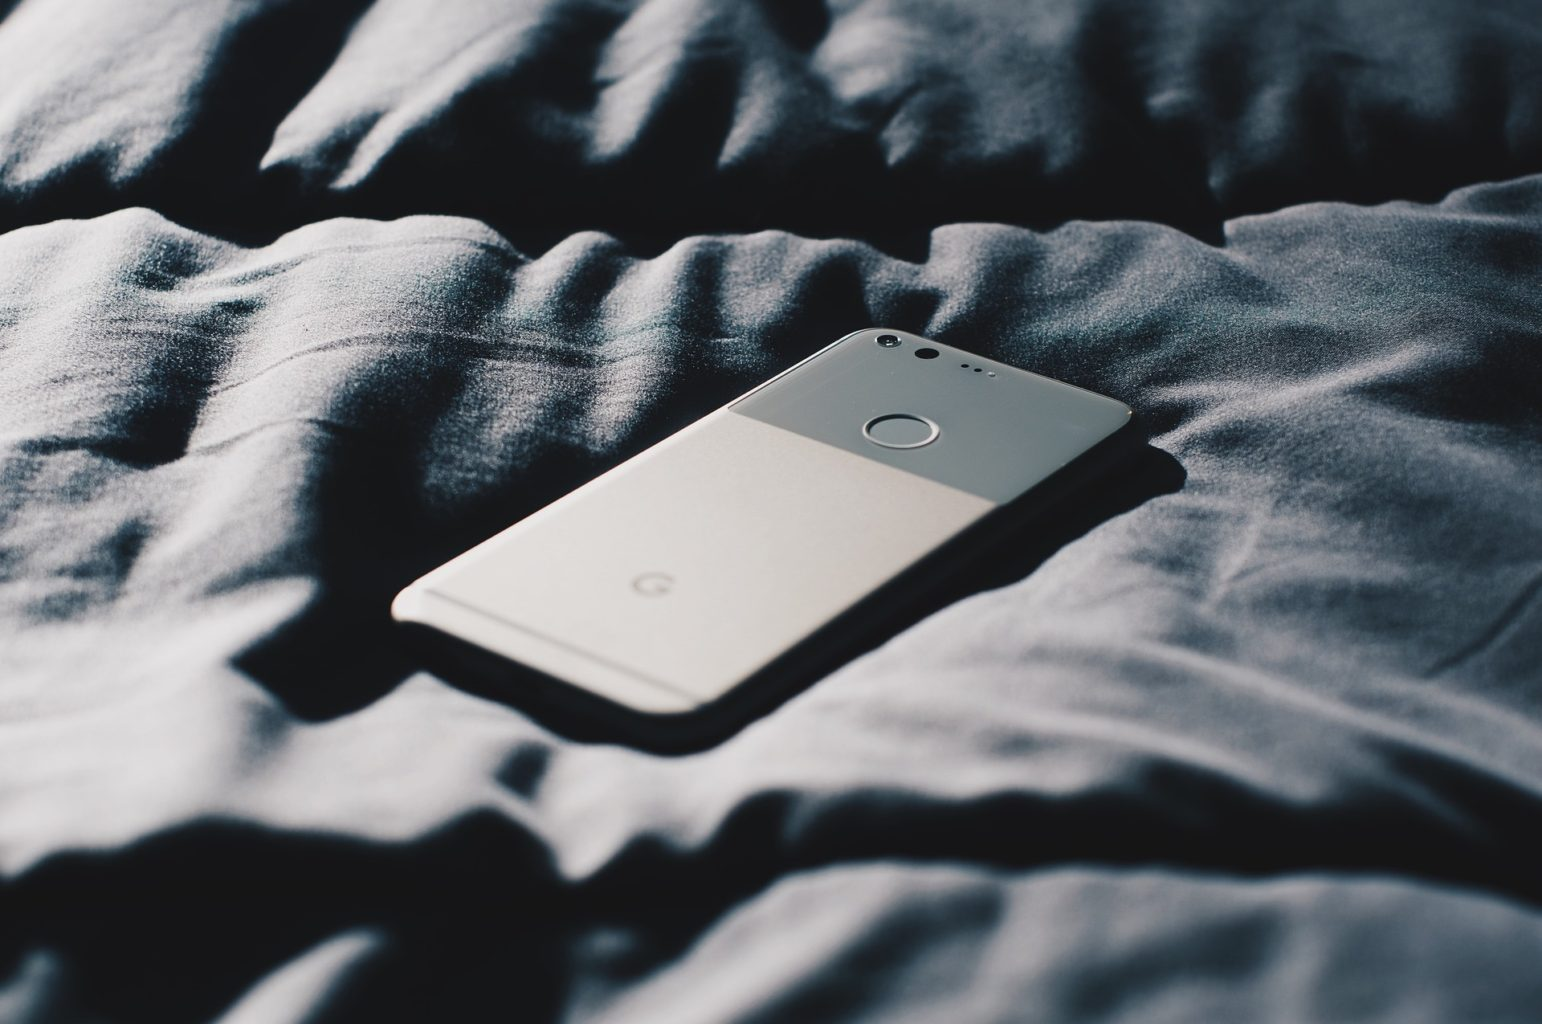 Sleeping with your phone in another room can improve your sleep quality and quantity